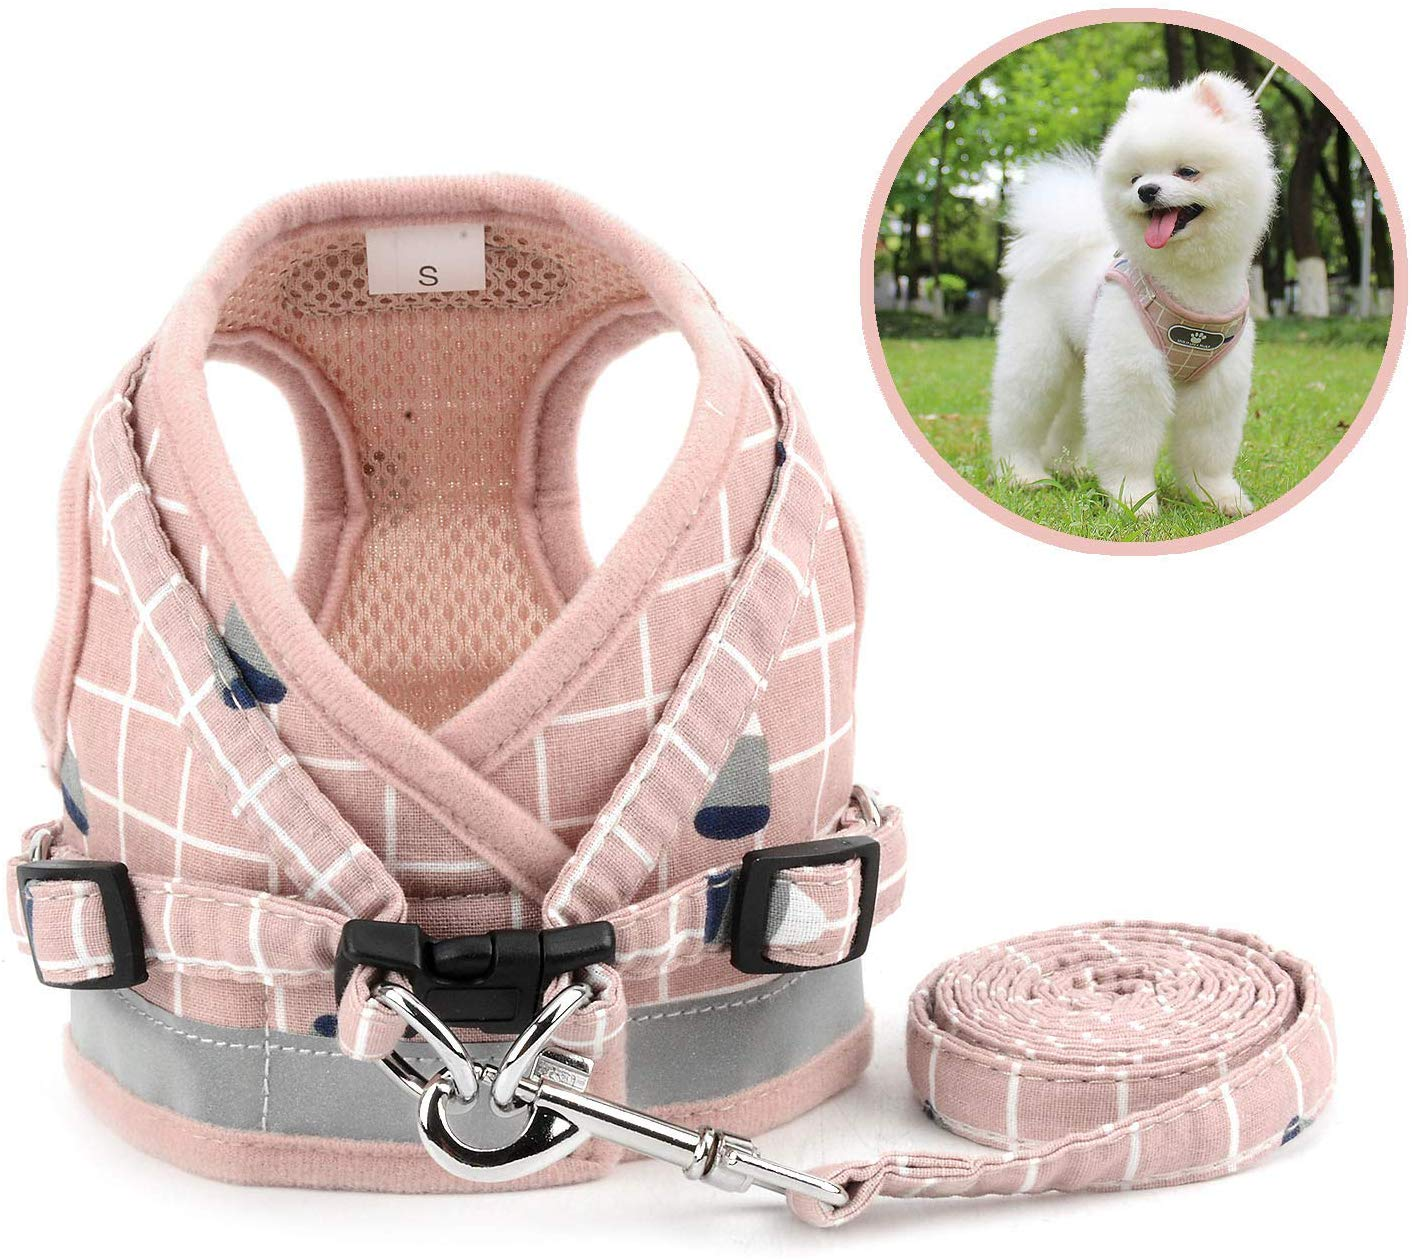 Zunea Small Dog Harness and Leash Set Adjustable Reflective Step-in Harnesses